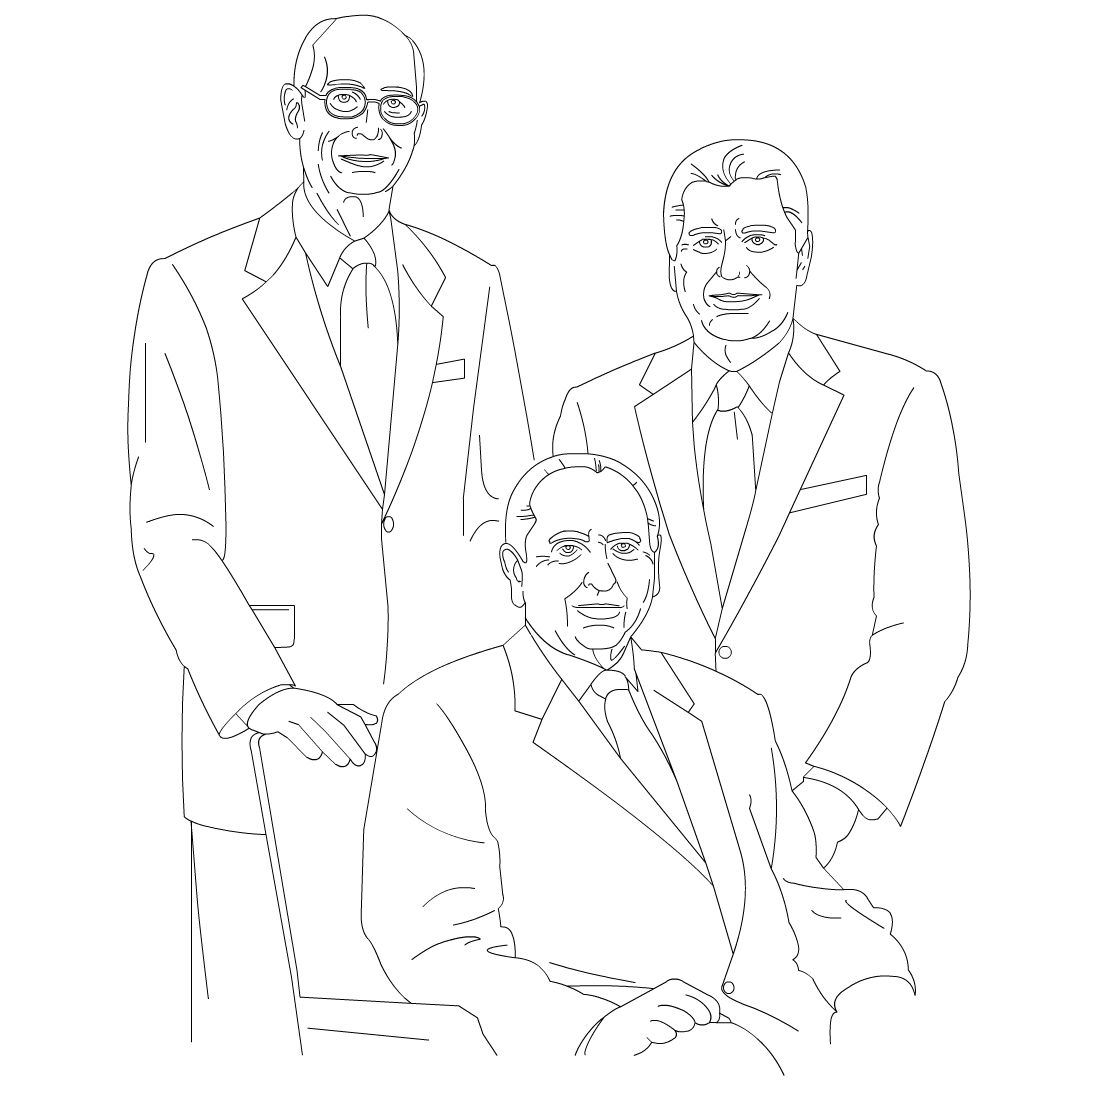 free lds clipart to color for primary children | First Presidency ...